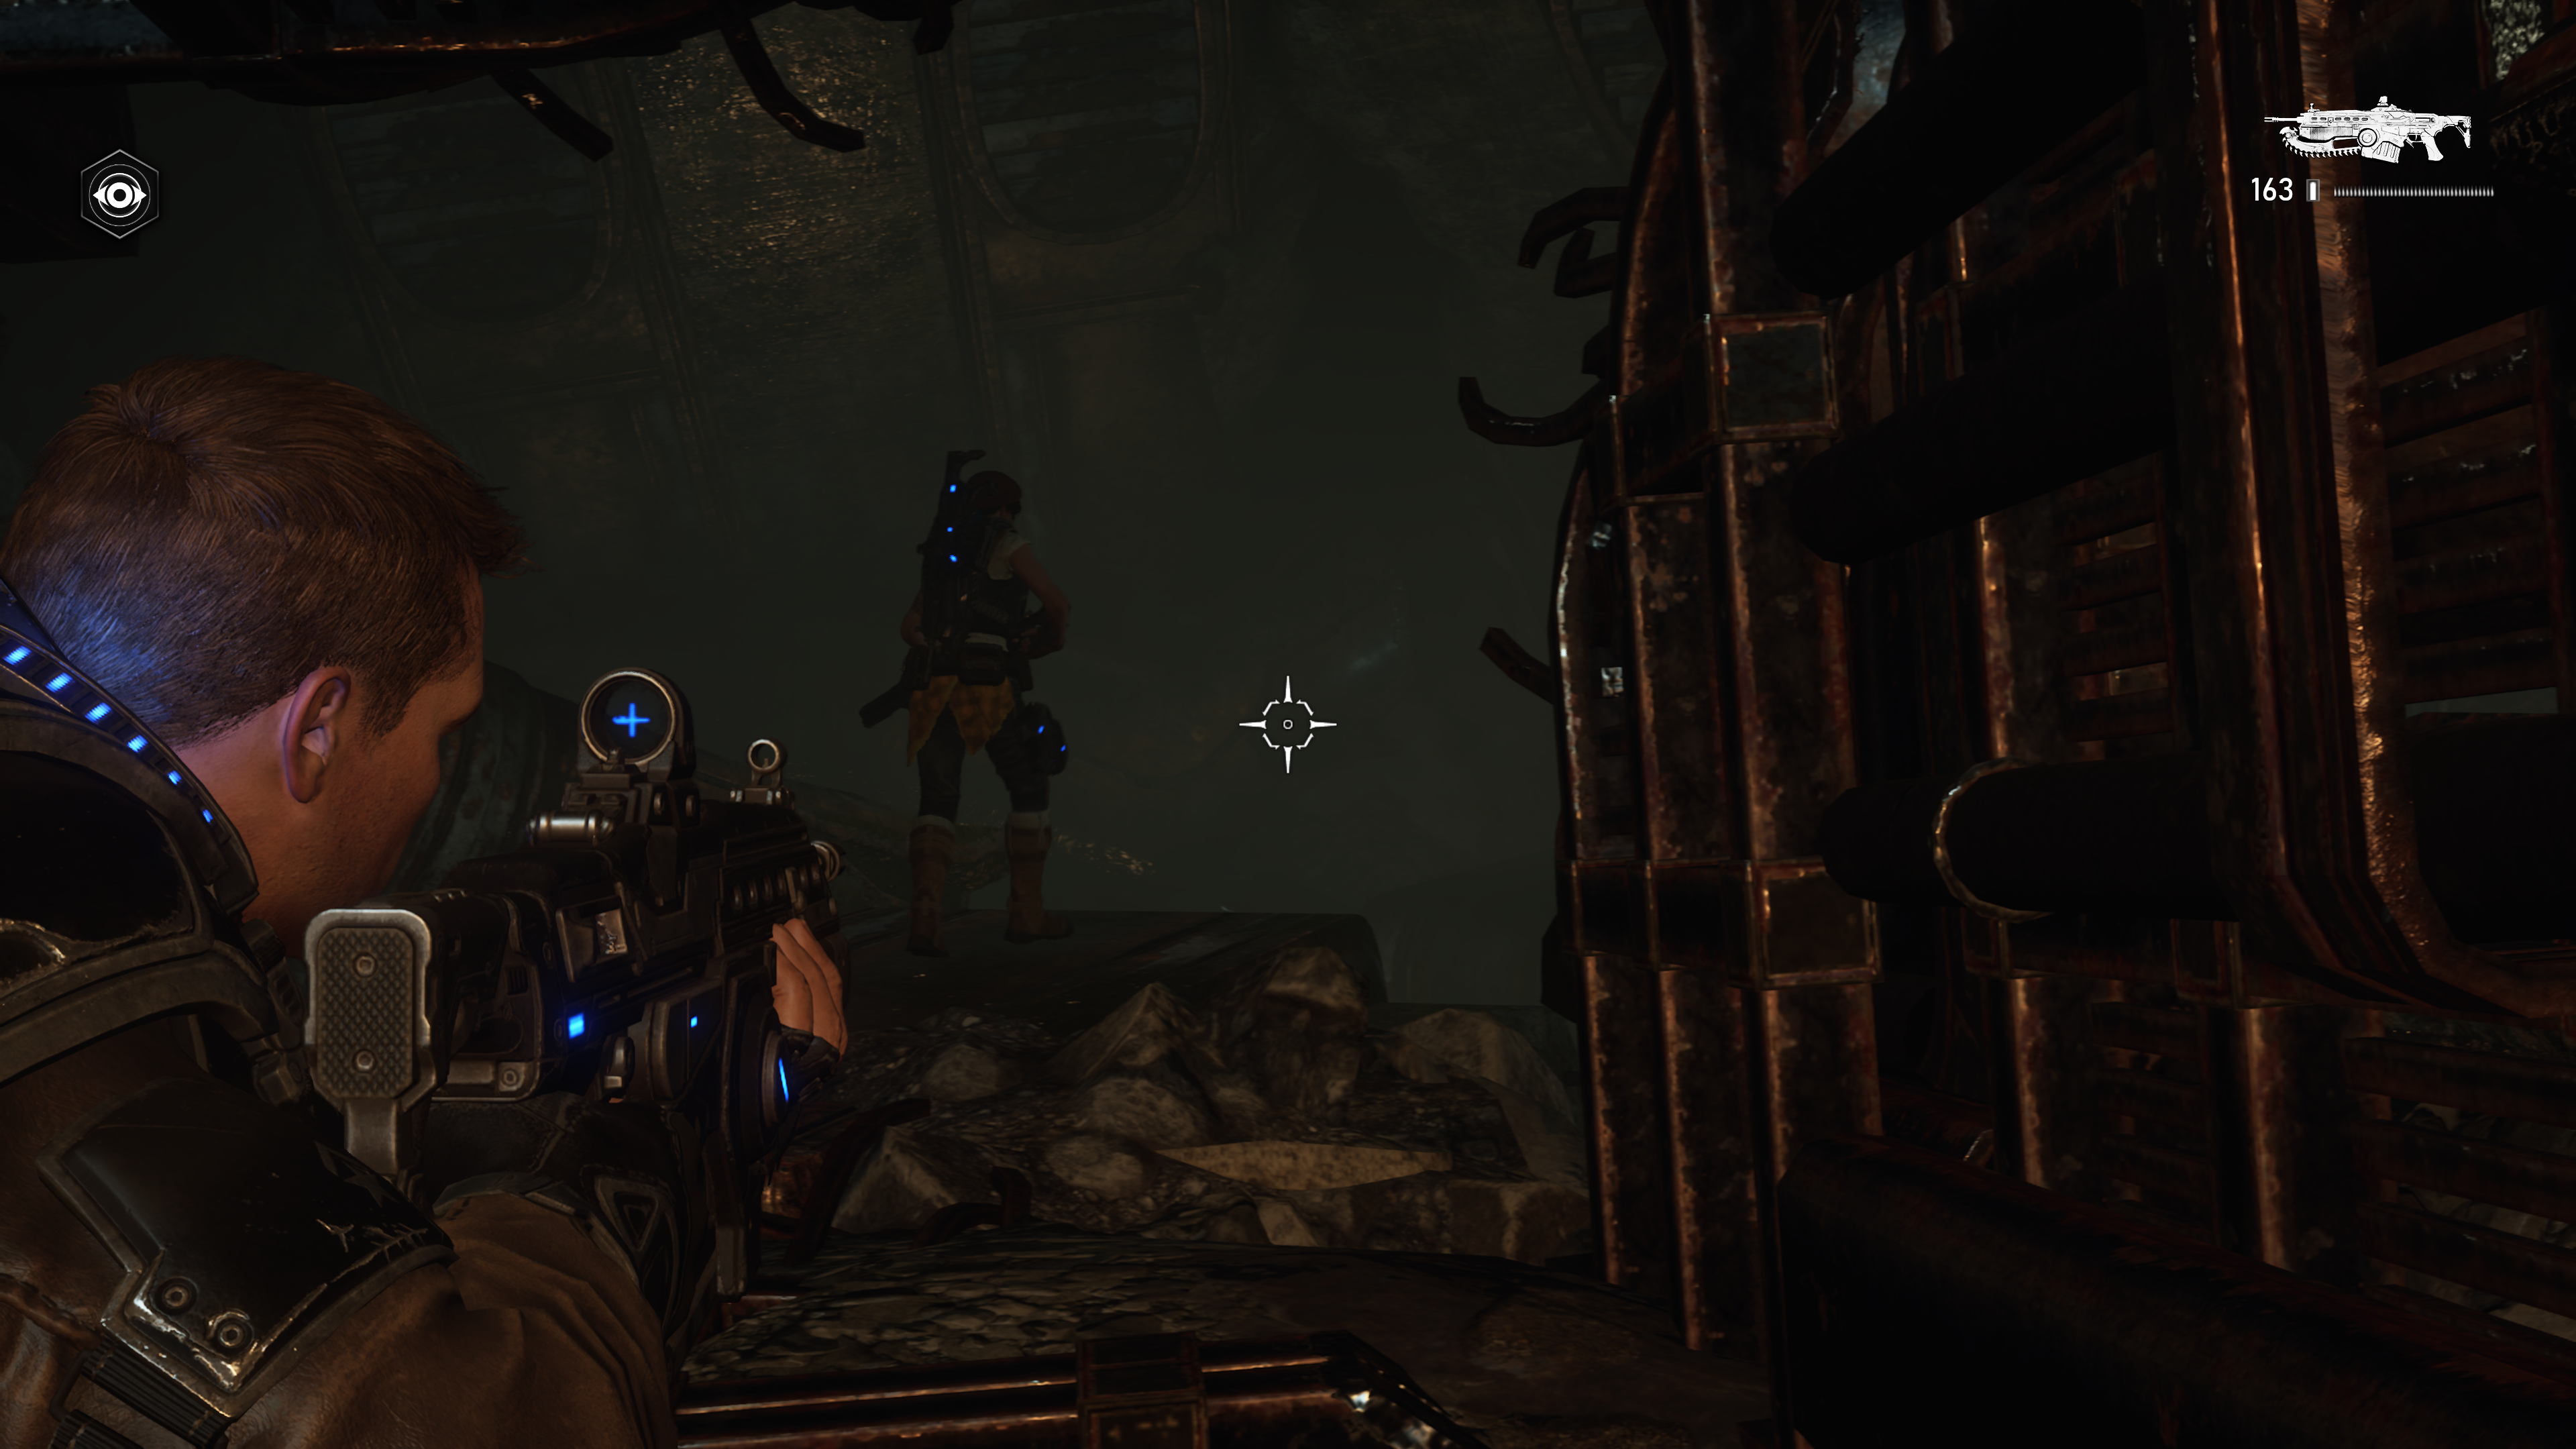 Screenshot showing a character looking down his sights in a dark corridor.